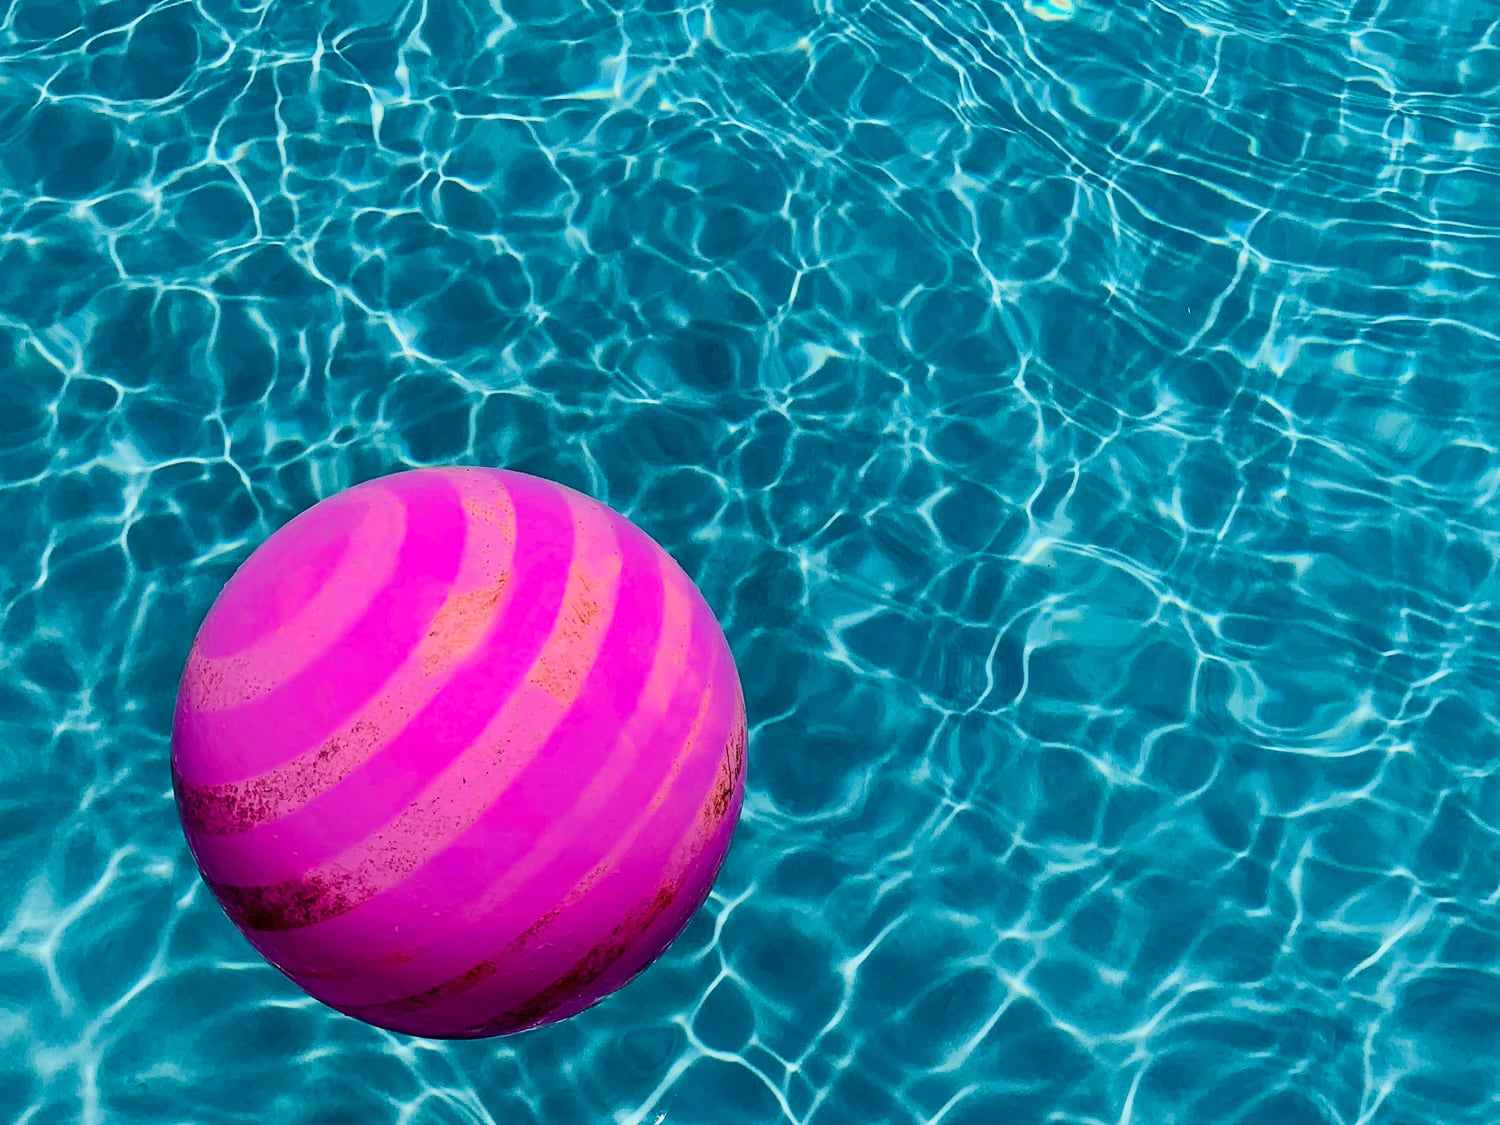 While I was photographing the fence, I spotted a couple of balls near the pool and a pink one caught my eye. This client has a great pool that is so clean and neat that it was just begging to be photographed. I threw the bright pink ball into the vibrant, blue water and I loved the contrast in the colors. I took quite a few different shots but I only really liked one. This is the photo I will be submitting for the contest.  26mm - 1/4,300 - f/1.8 - ISO 25